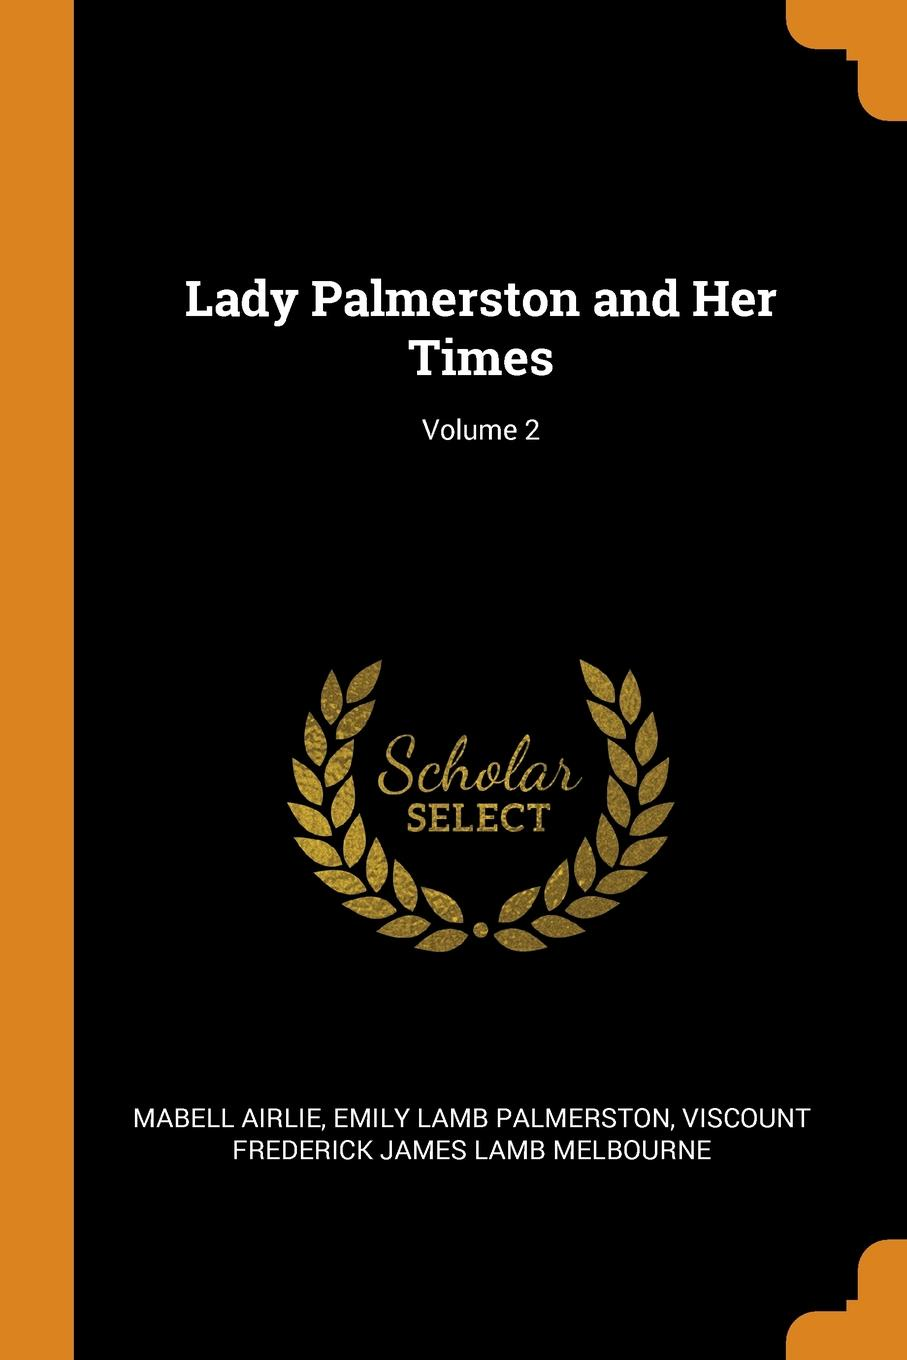 Mabell Airlie, Emily Lamb Palmerston, Viscount Frederick James Lamb Melbourne Lady Palmerston and Her Times; Volume 2